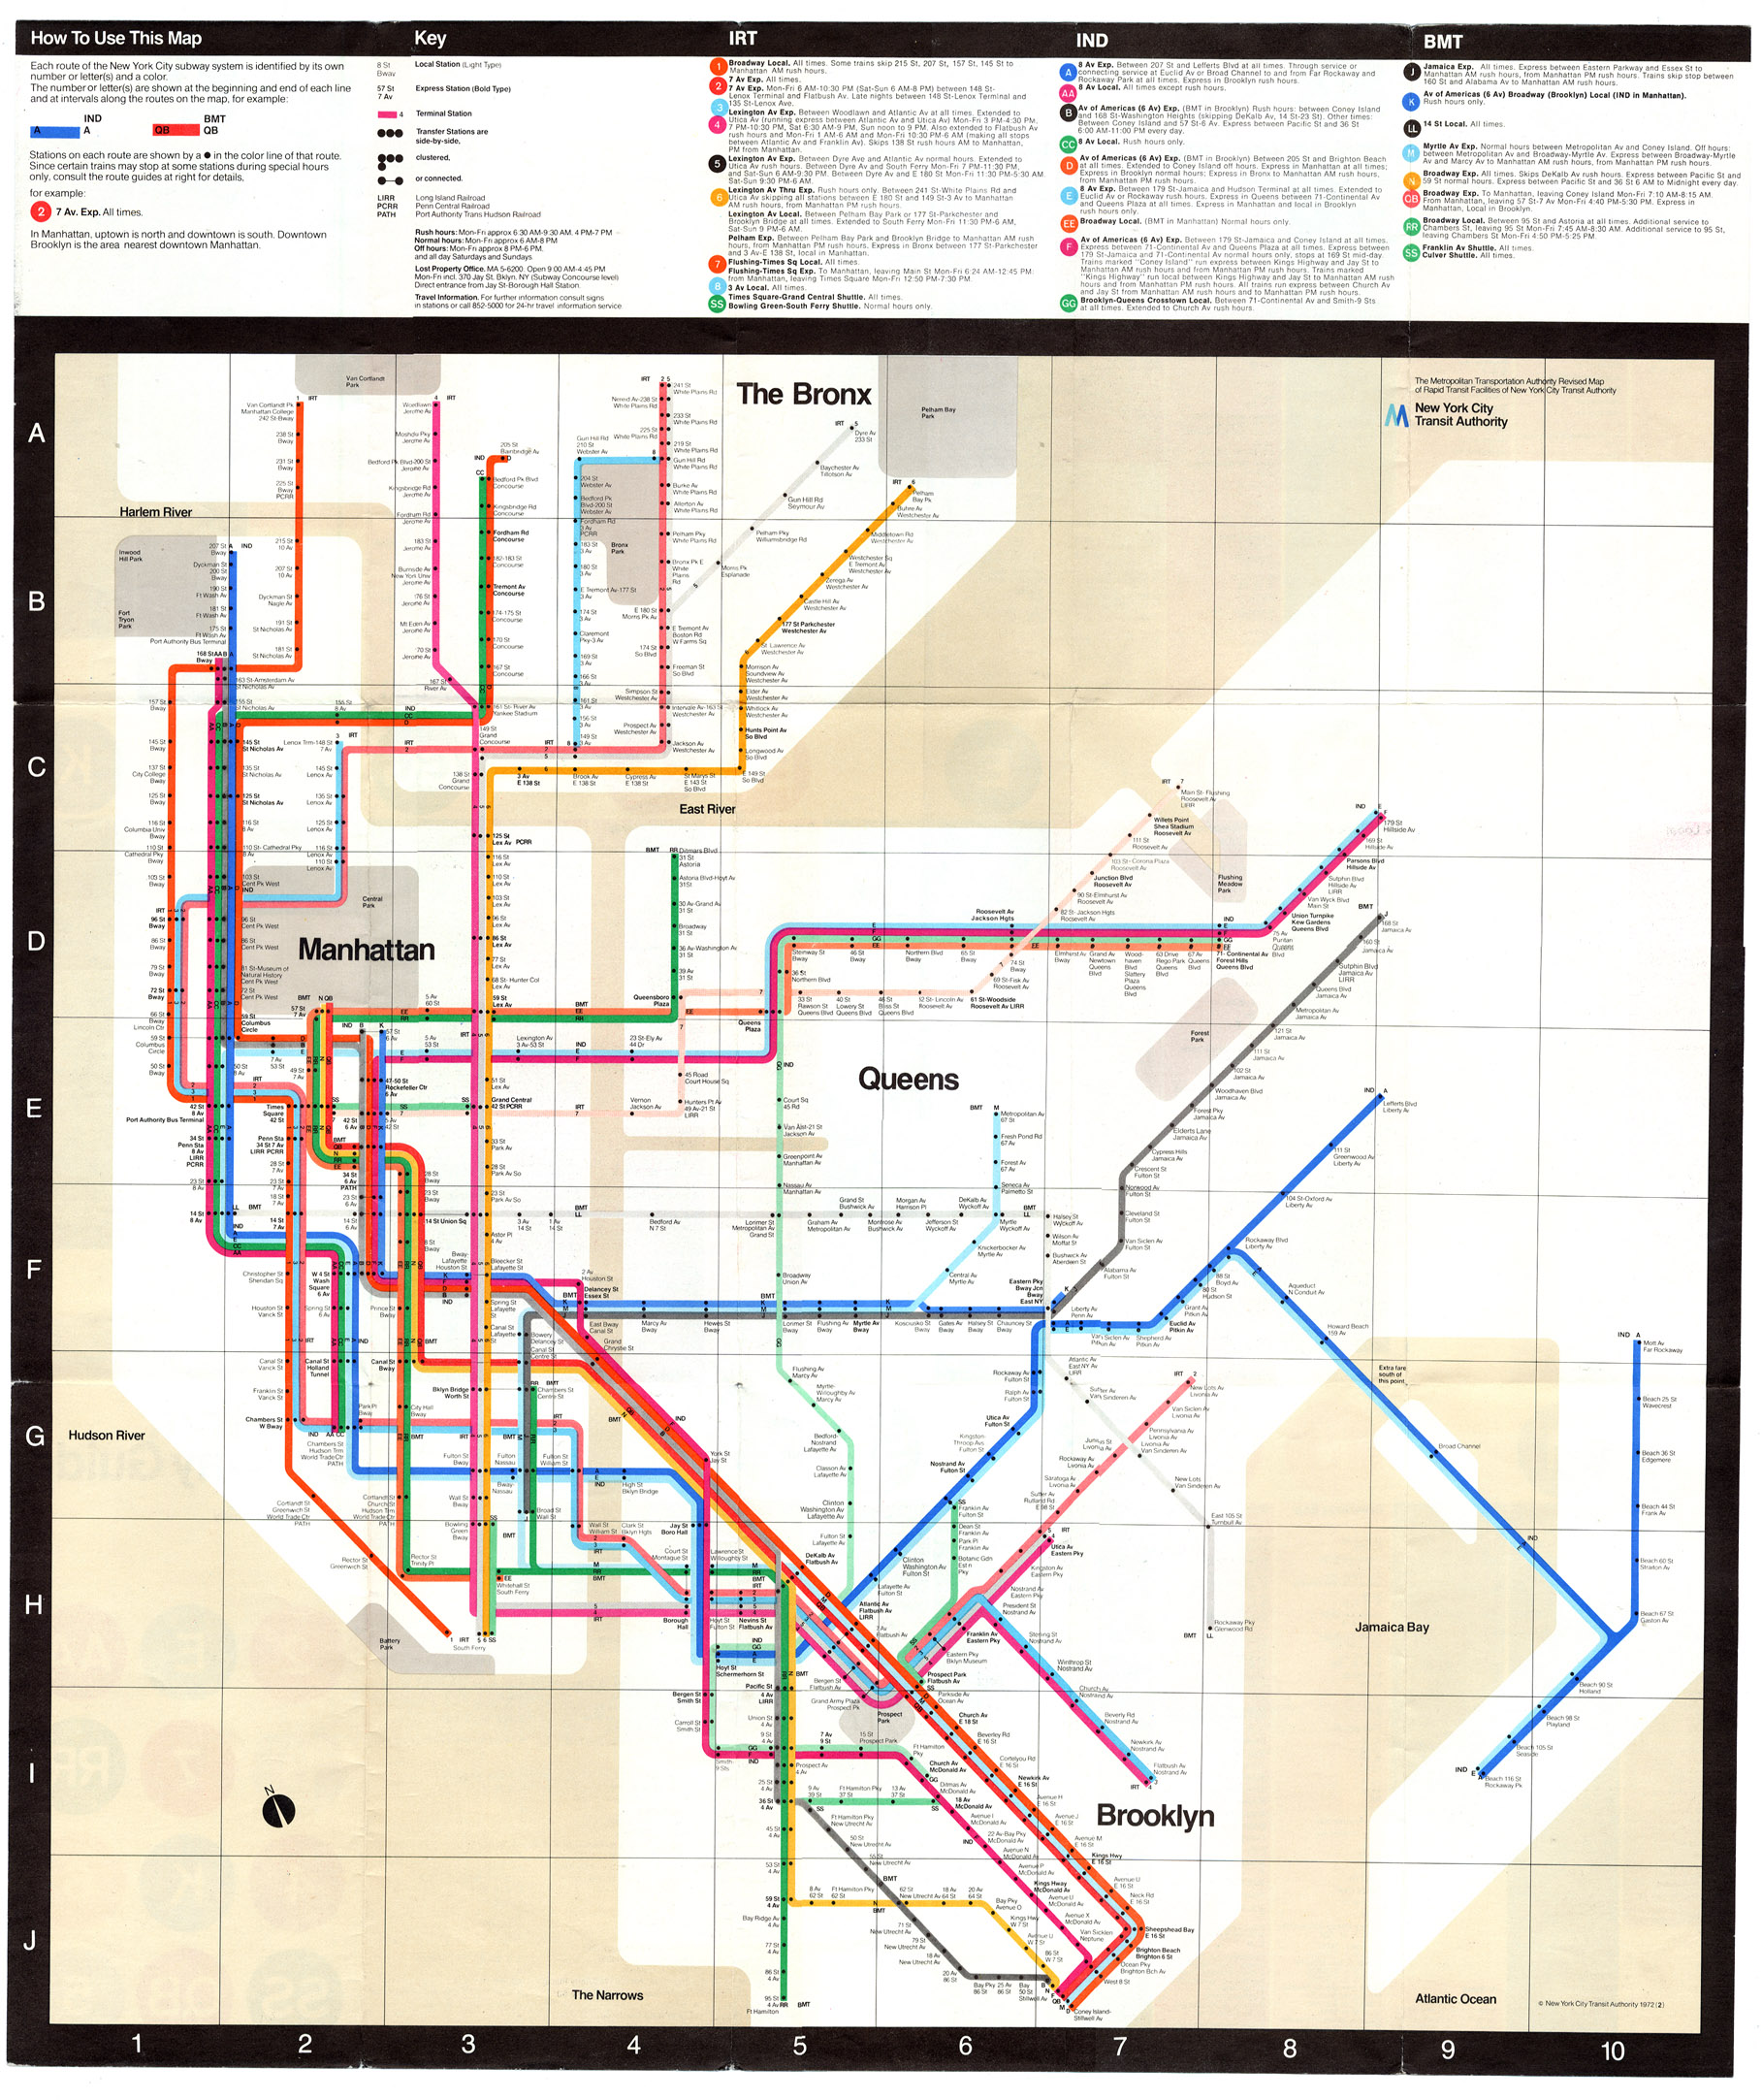 Nyc Subway Map 2000.Www Nycsubway Org